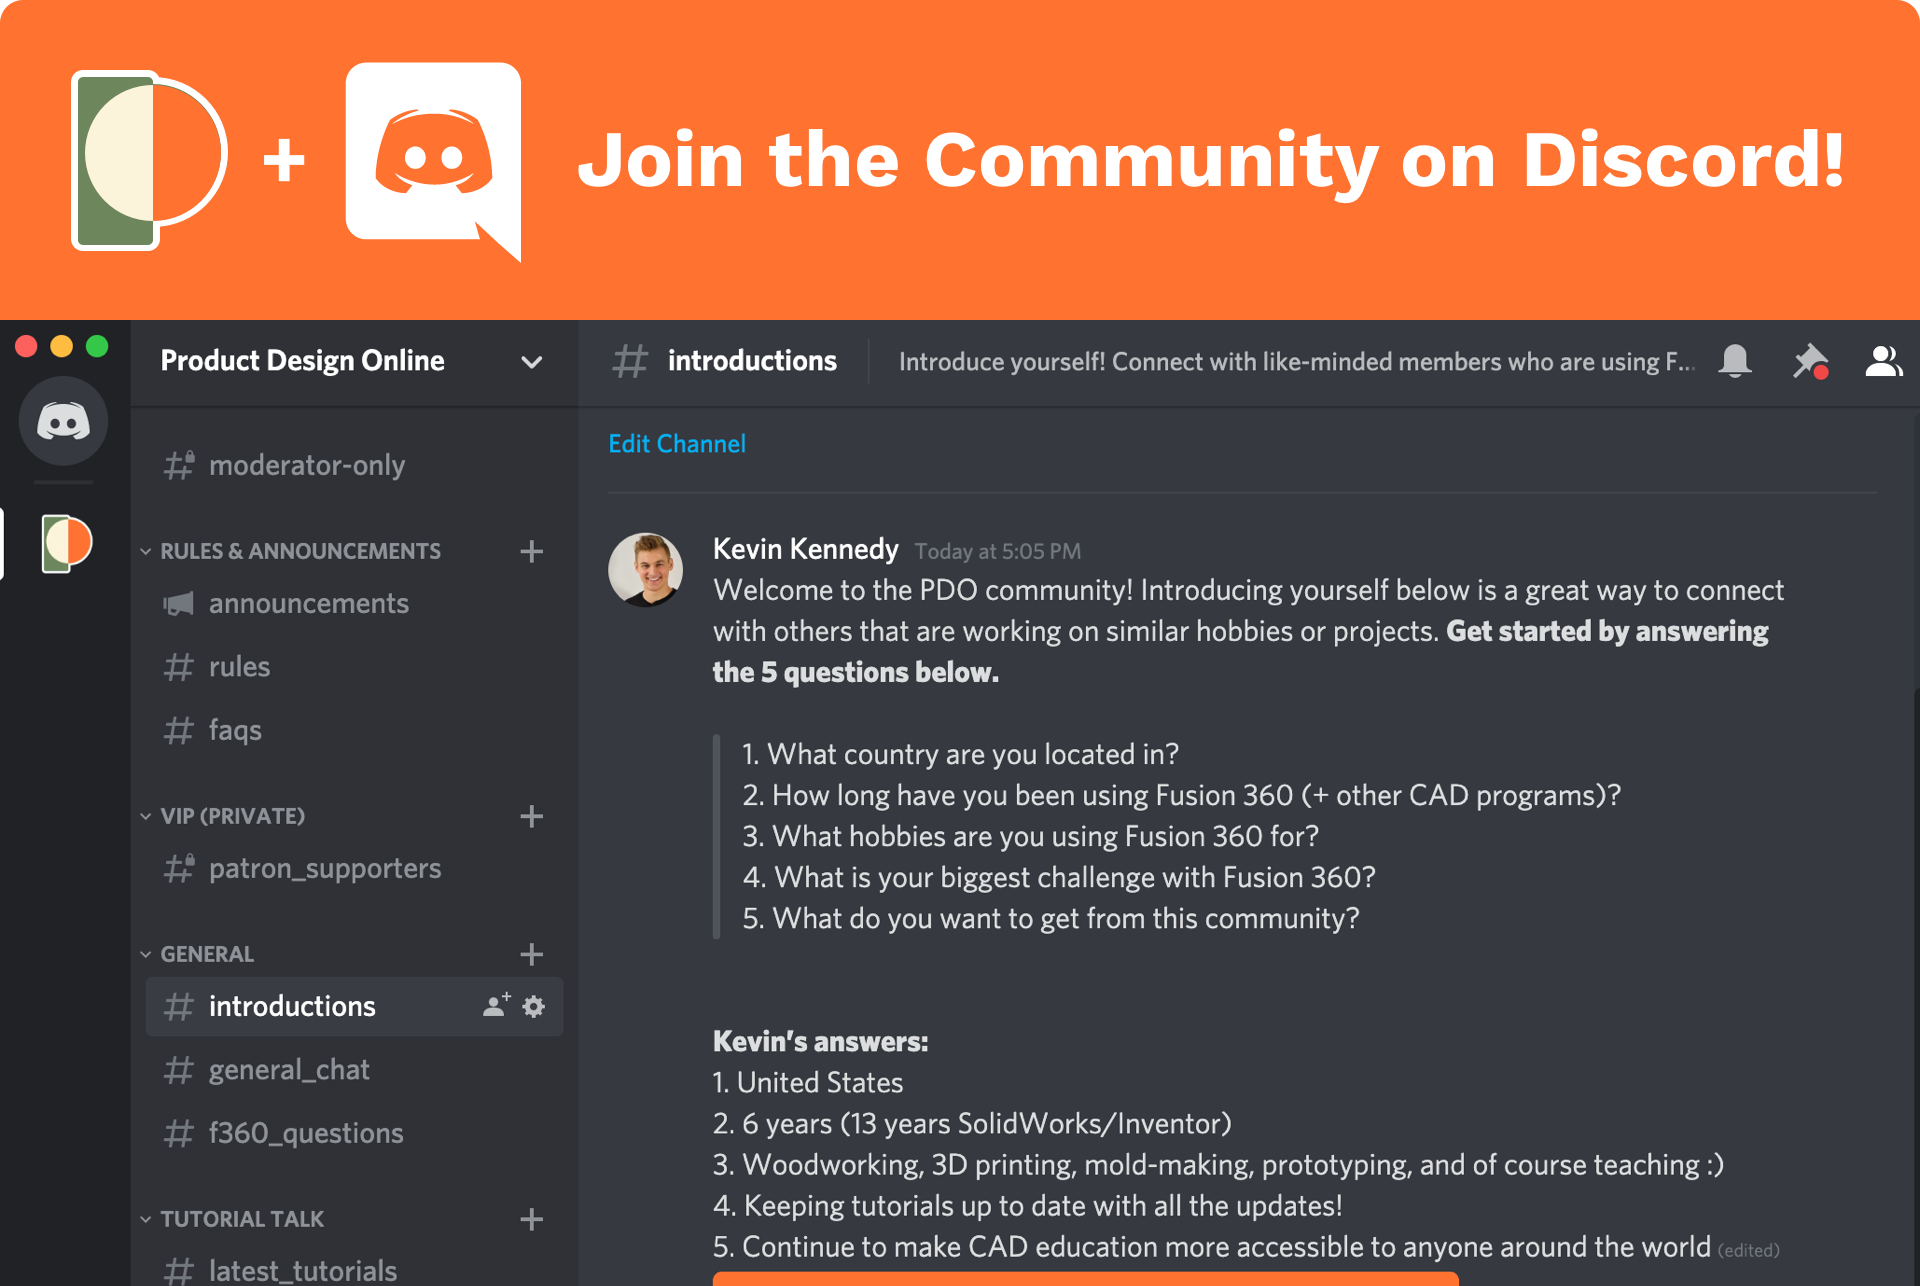 New Product Design Online Discord Server